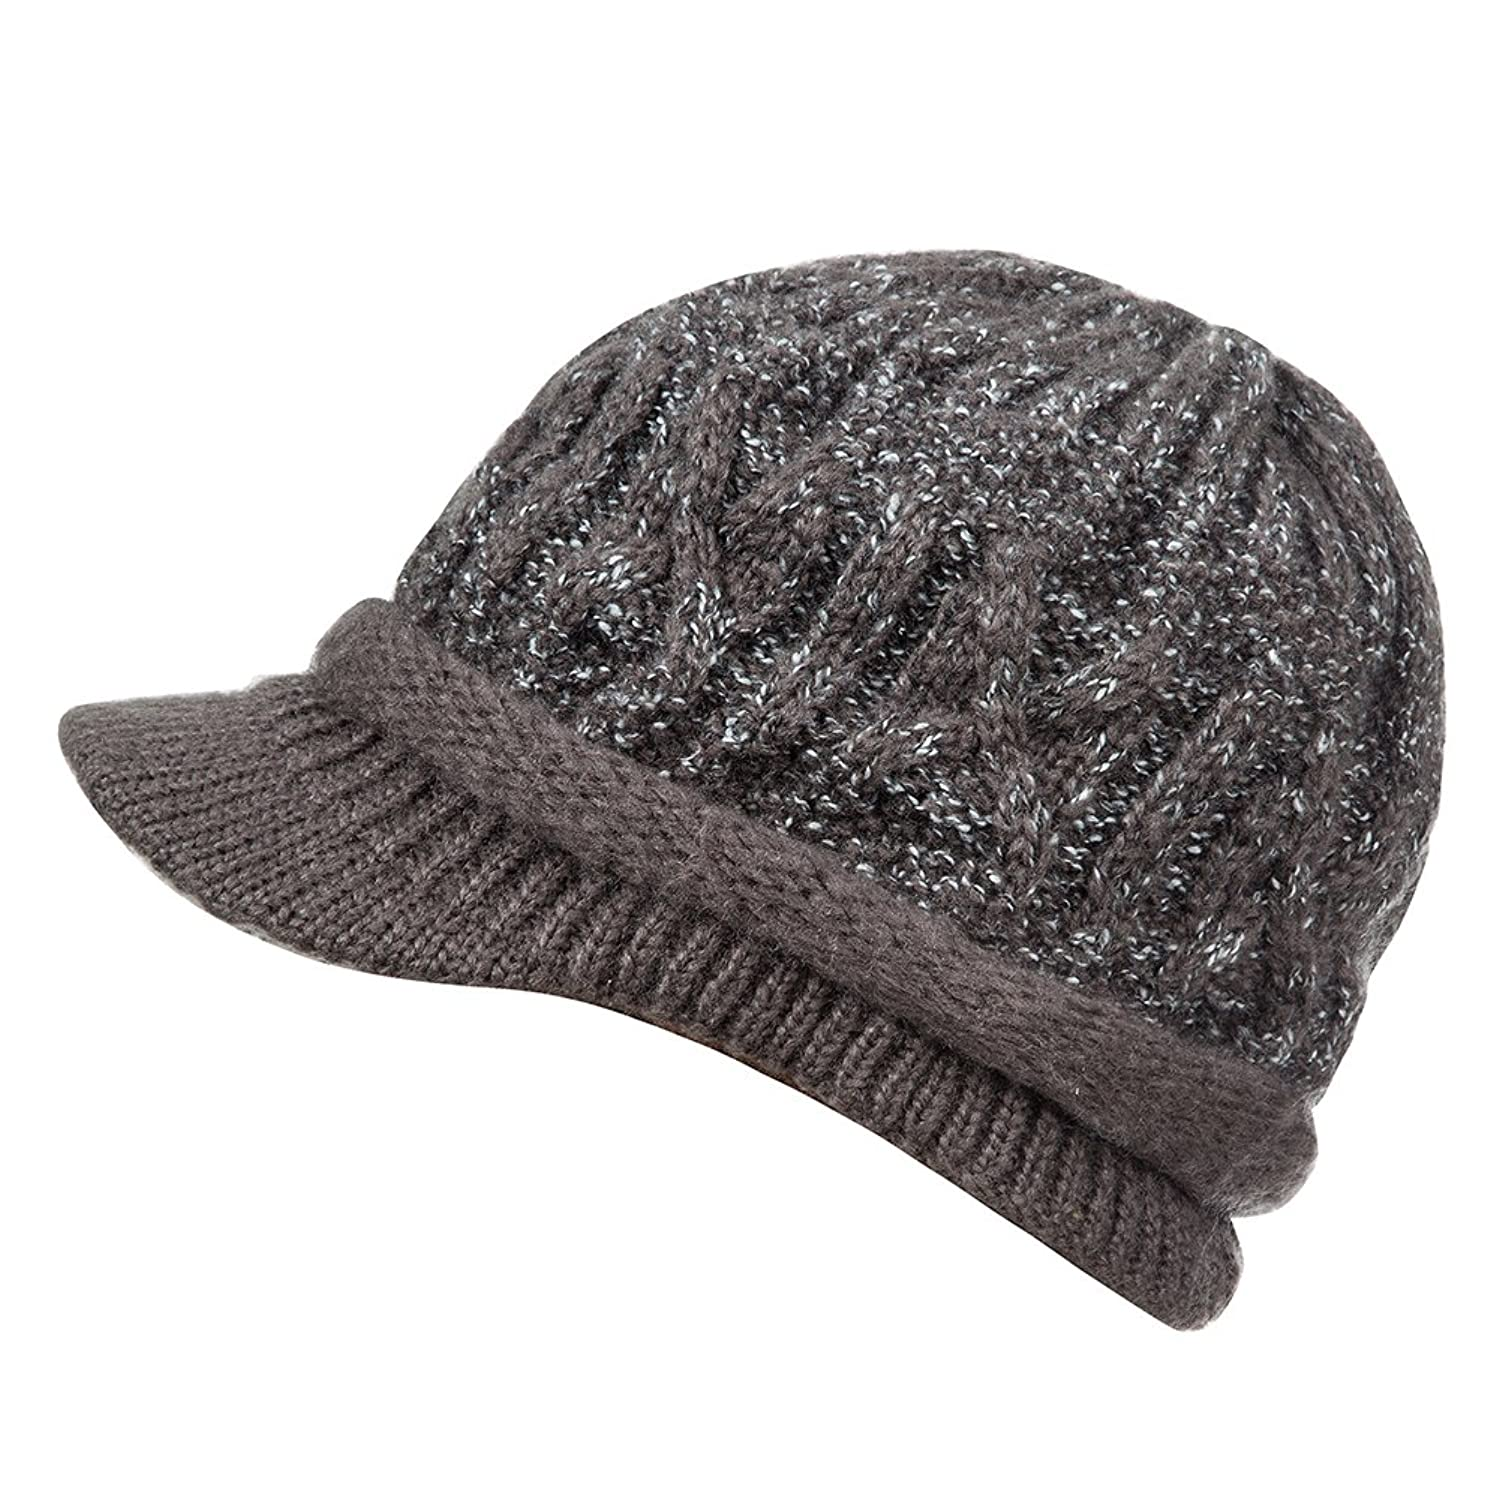 Knitted Winter Warm Hat with Visor Women and Girls